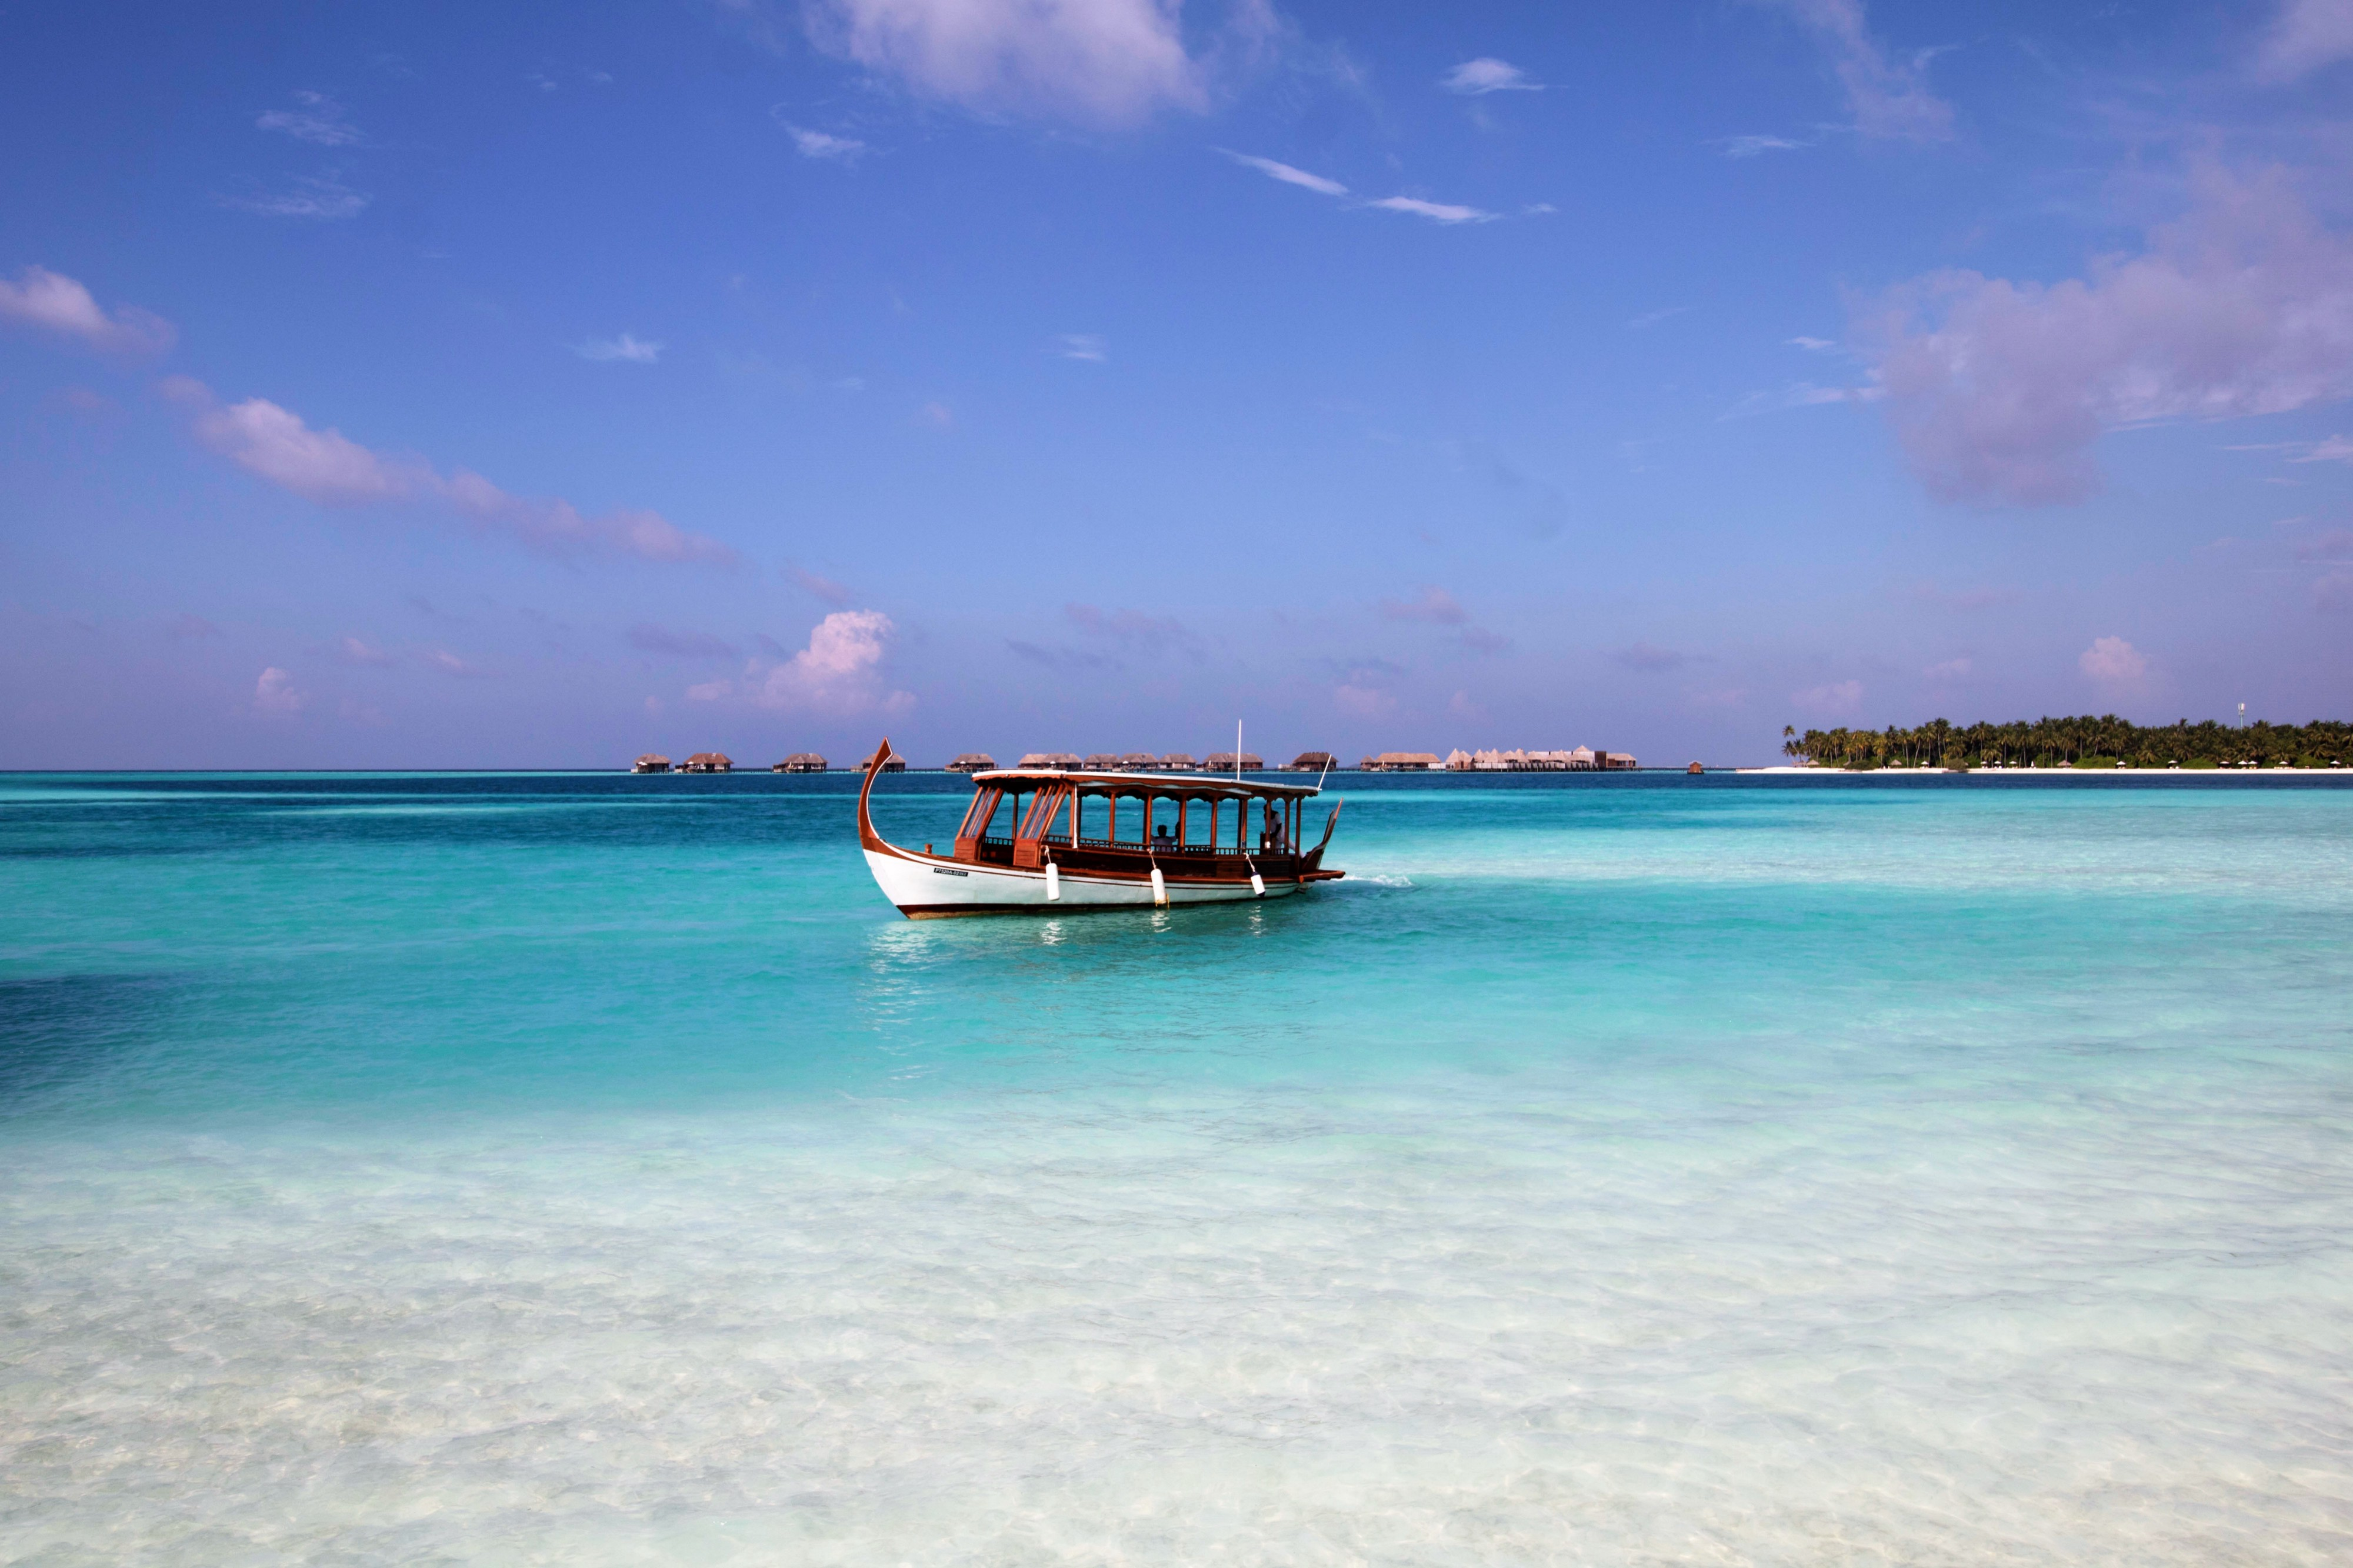 Honeymoon at Conrad Maldives - Teng Heong Ng - Medium